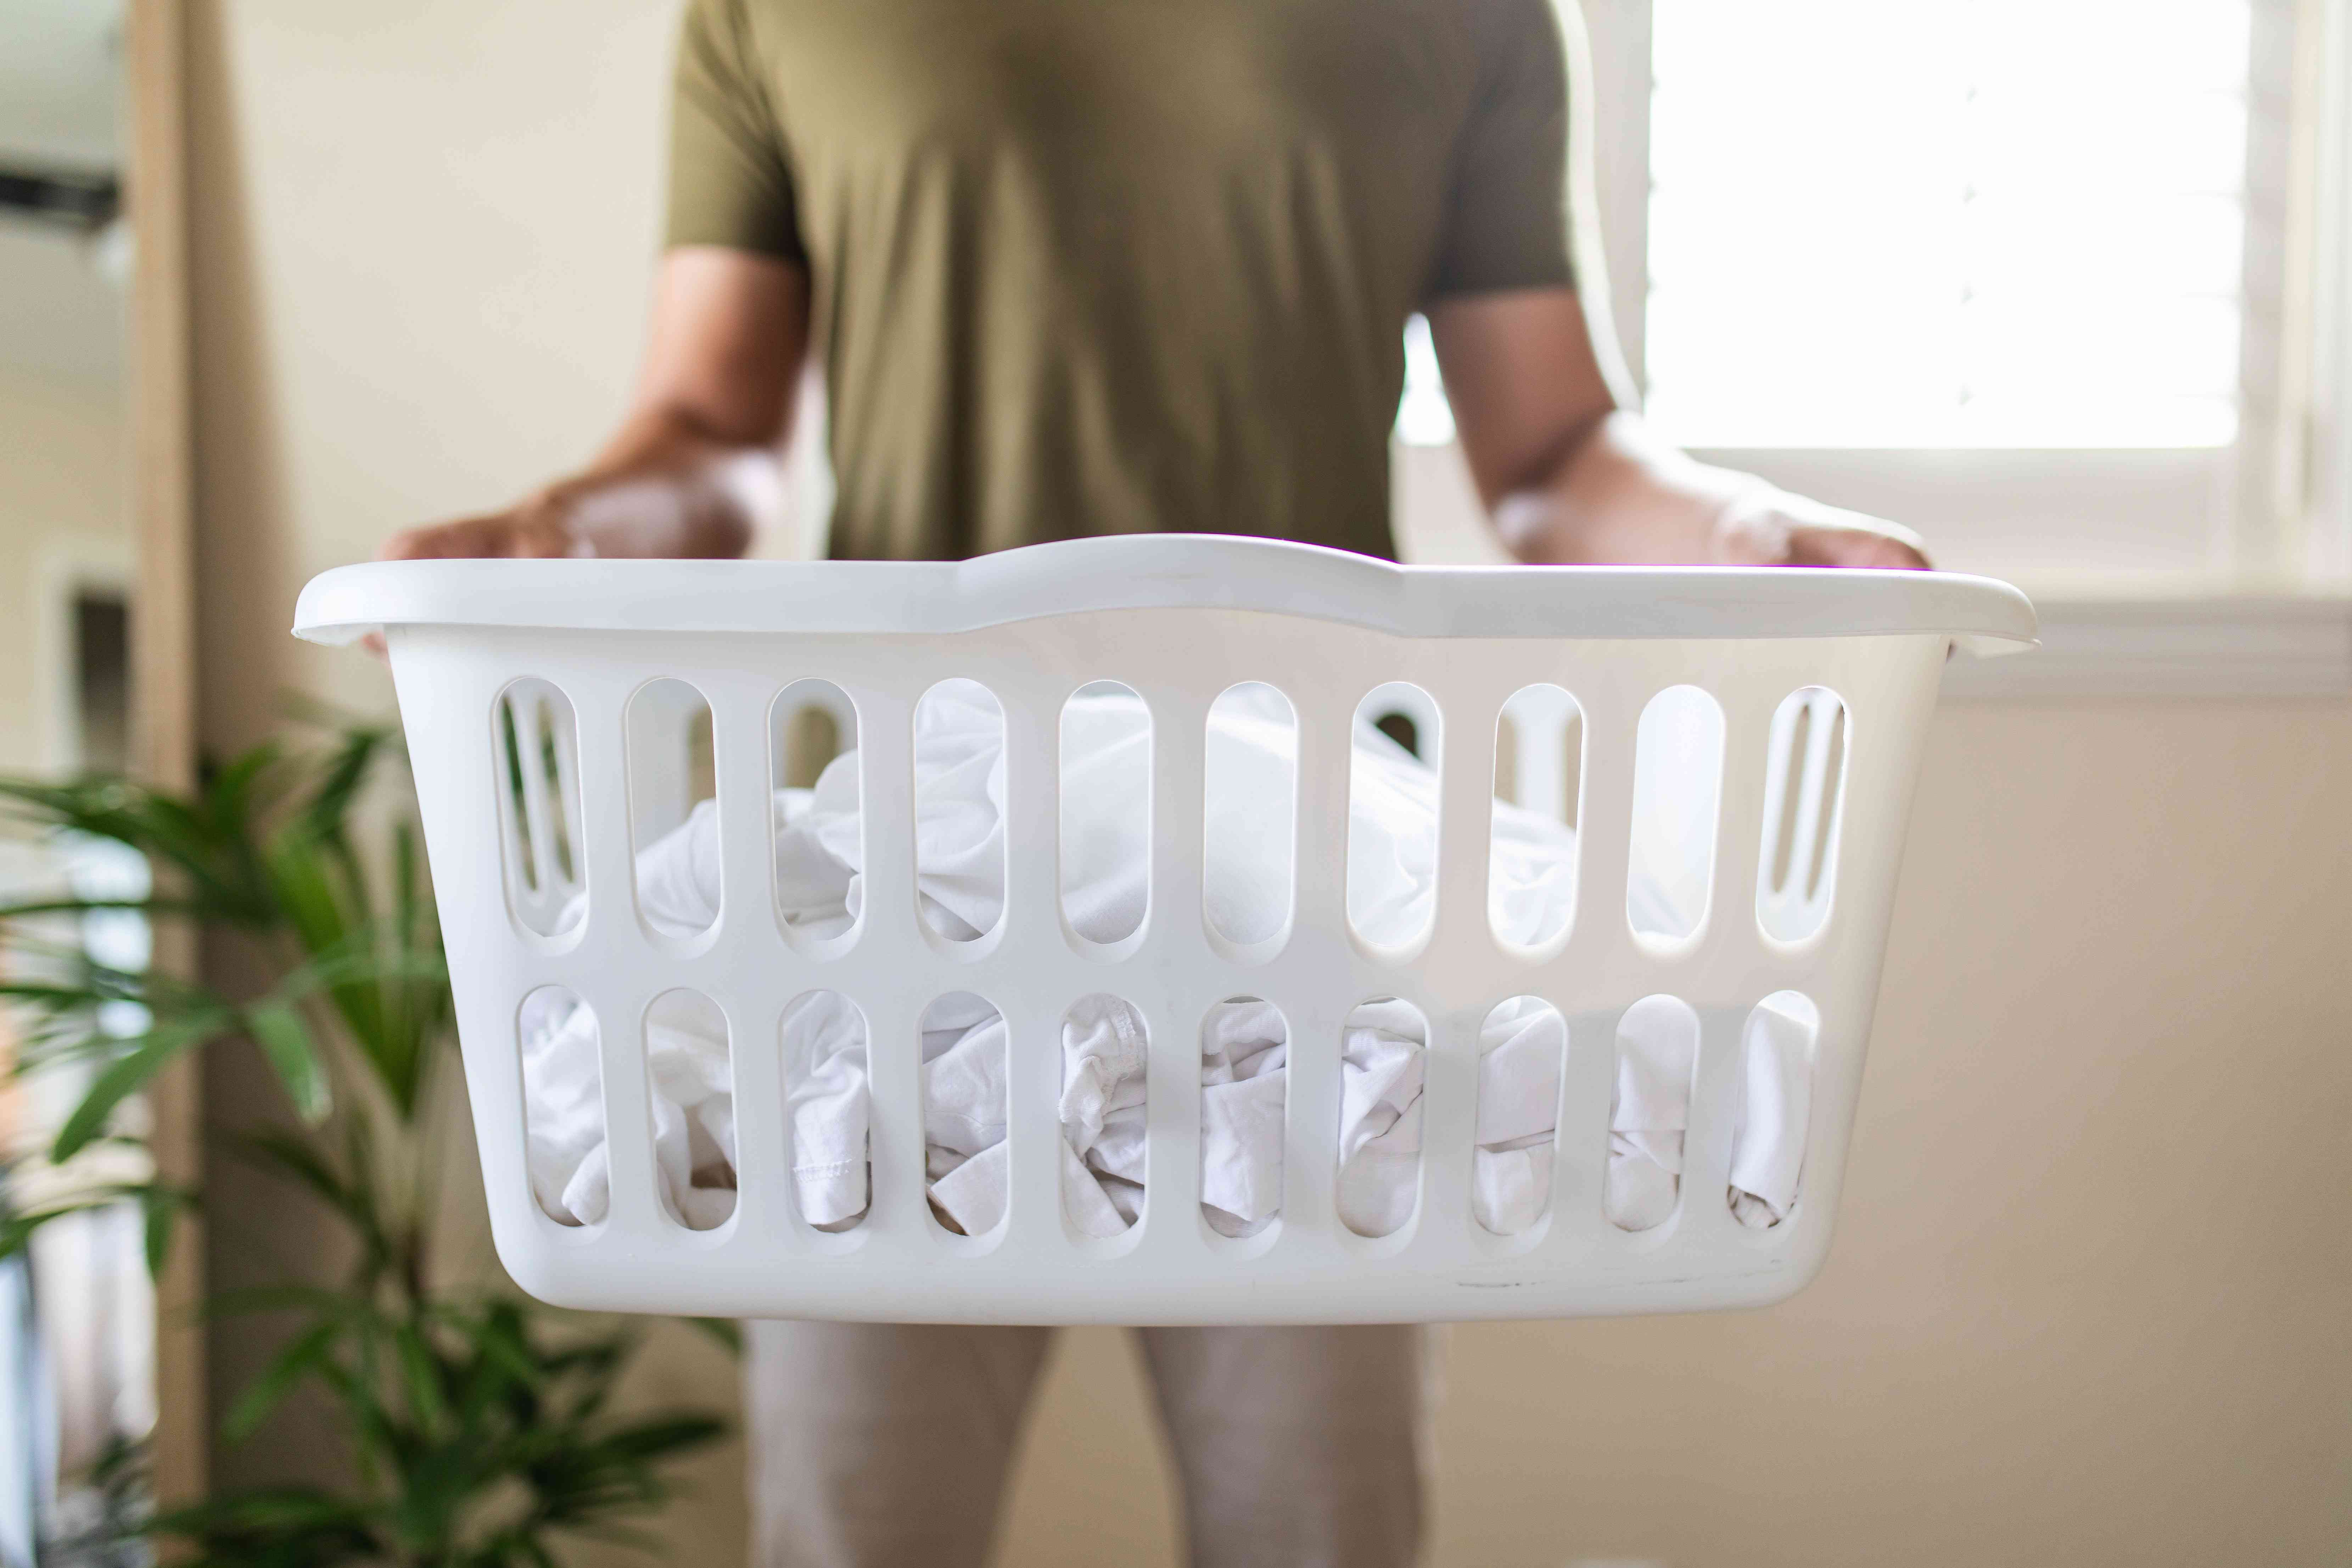 person holding a laundry basket